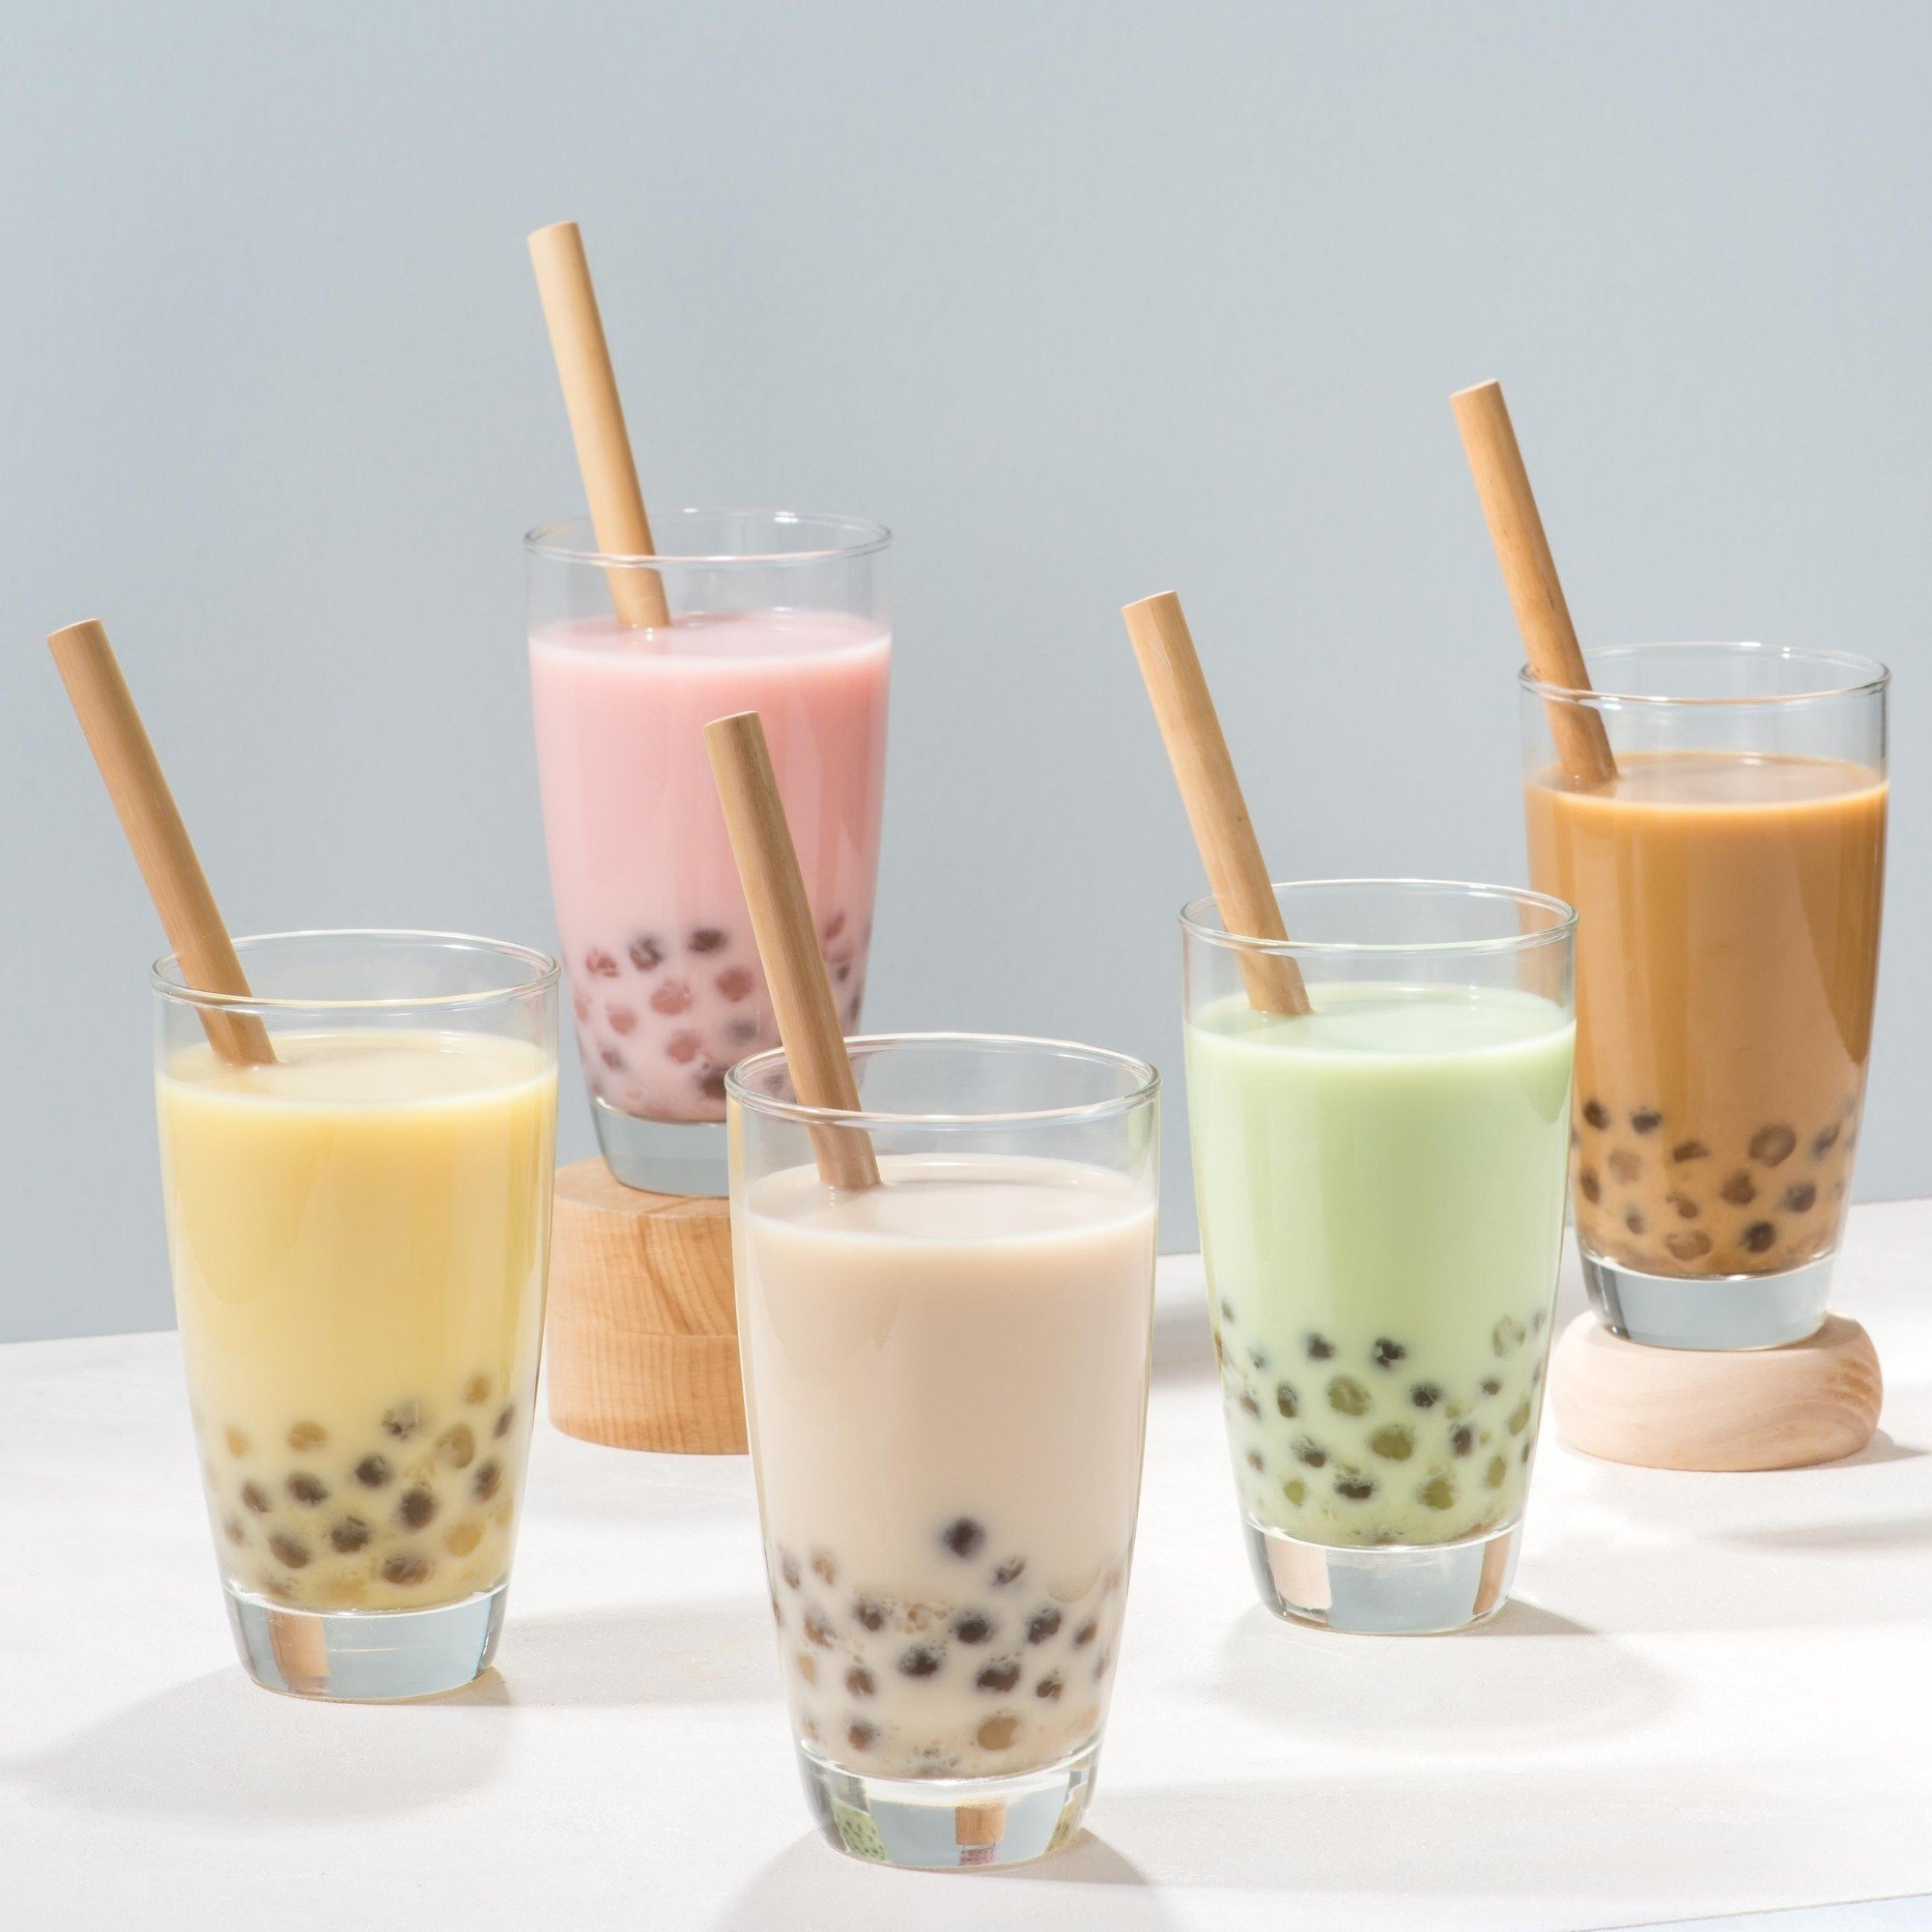 Best Spots for Bubble Tea in Calgary - Lauren's Lighthouse